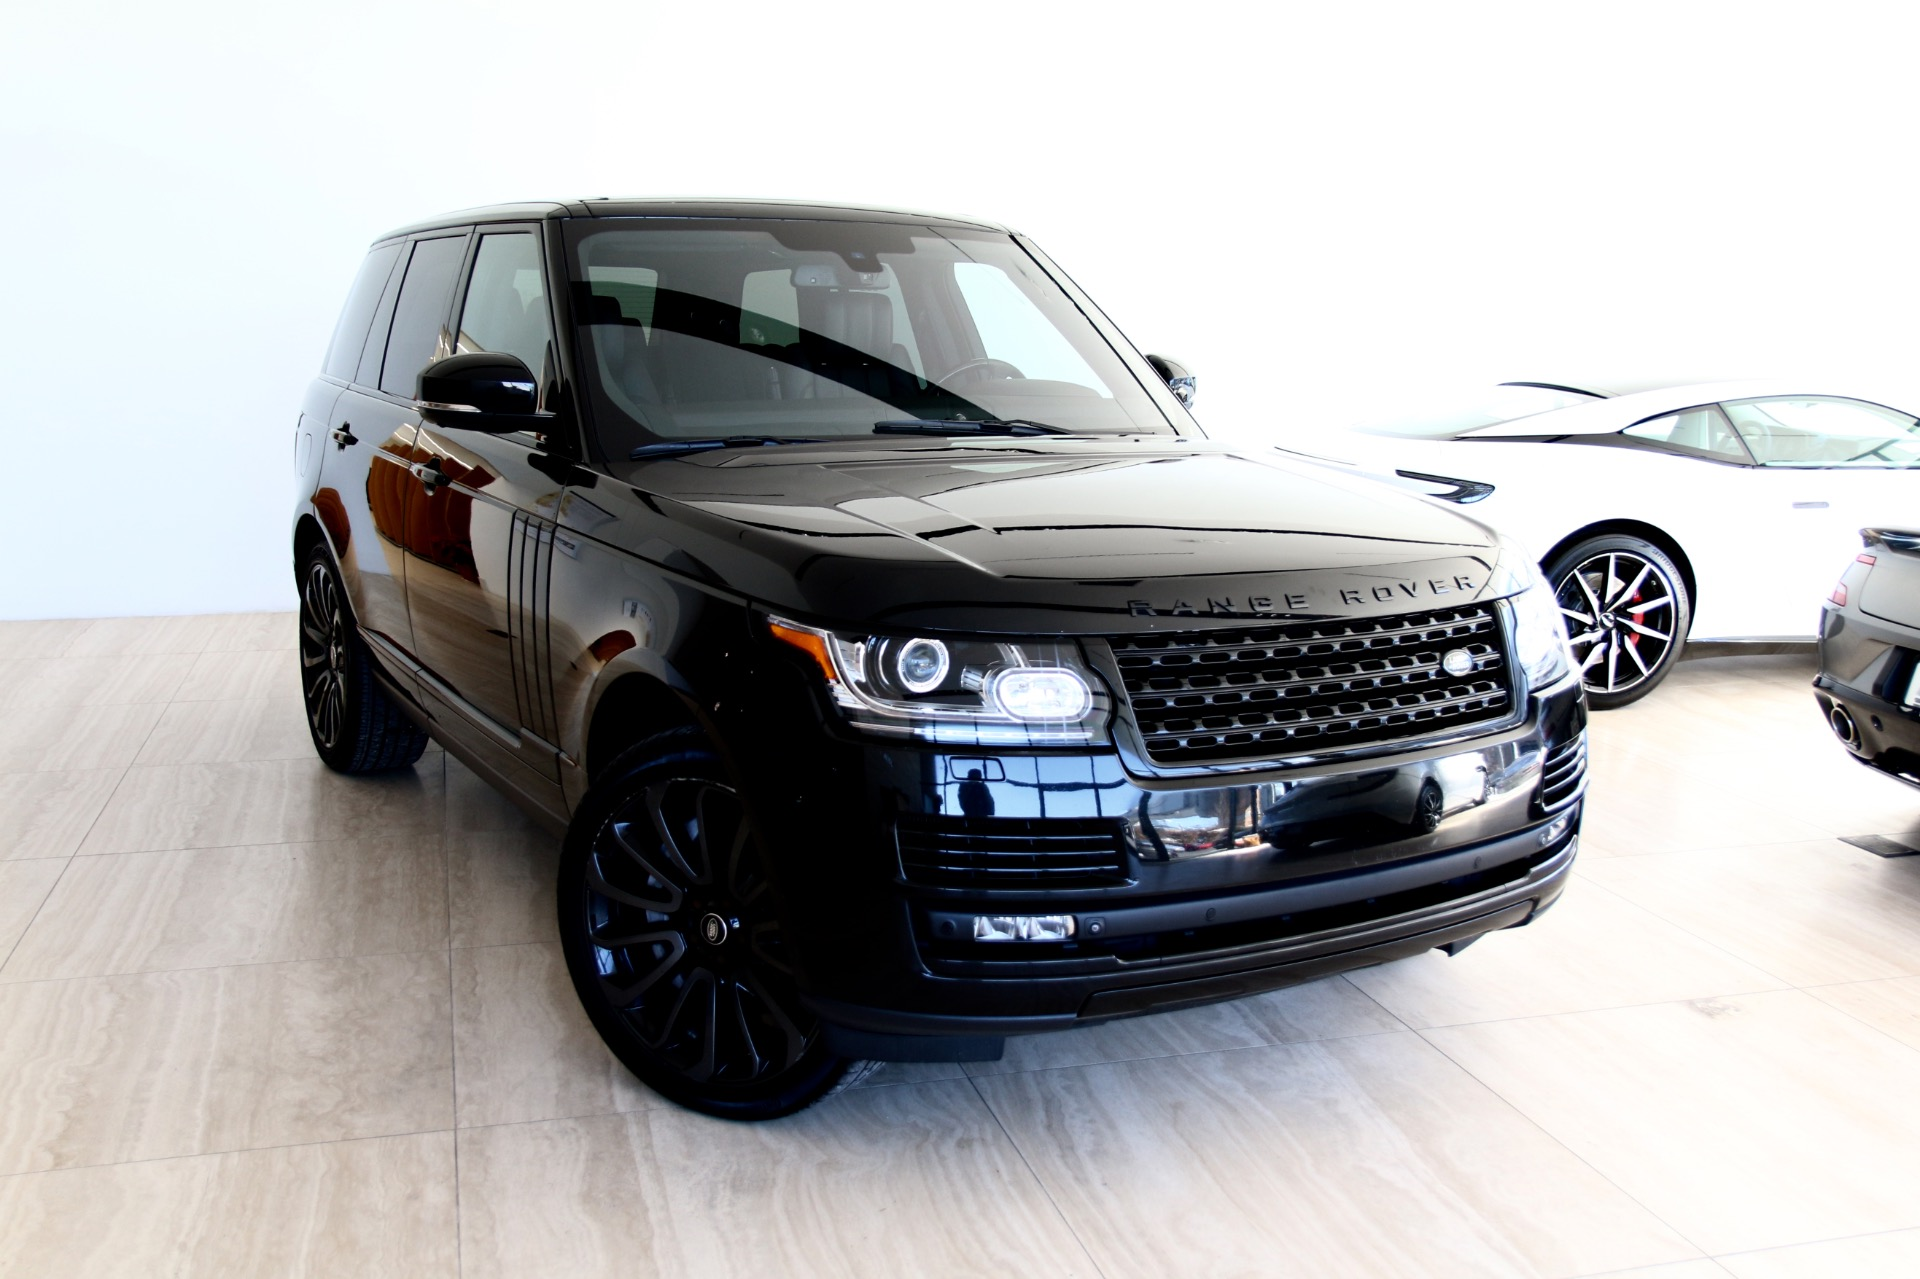 2015 Land Rover Range Rover Supercharged Stock 8N A for sale